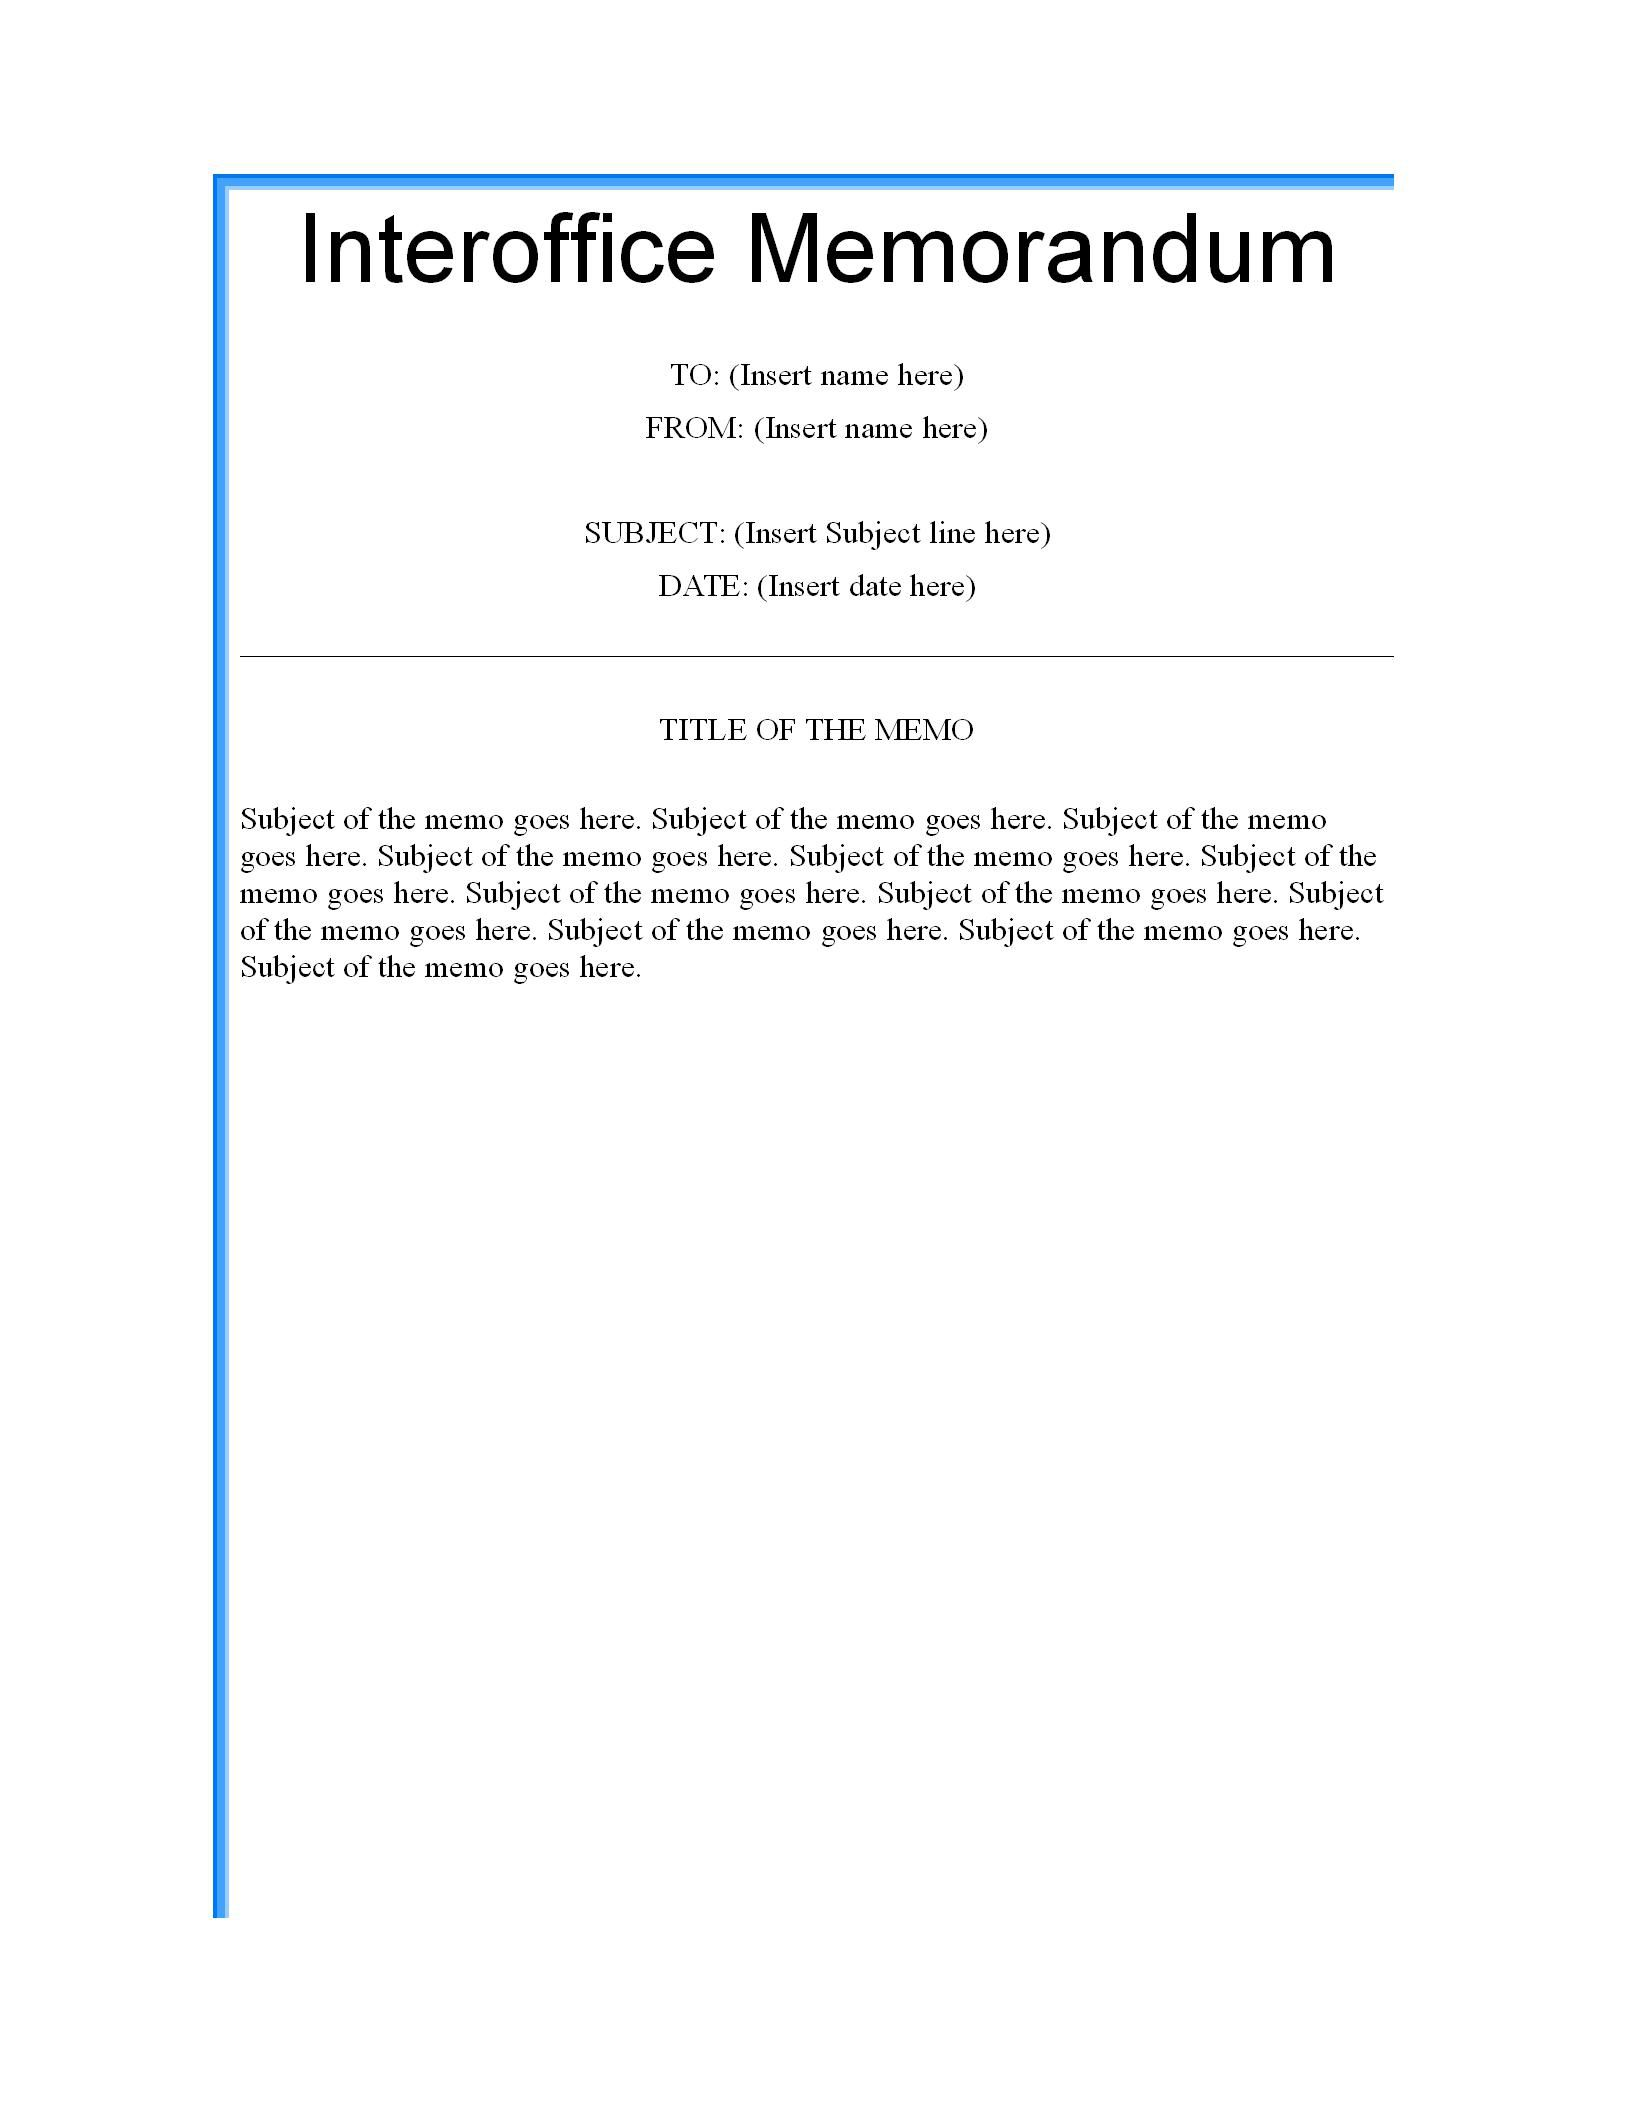 003 Formidable Microsoft Word Memo Template Highest Clarity  Professional 2010 Free LegalFull